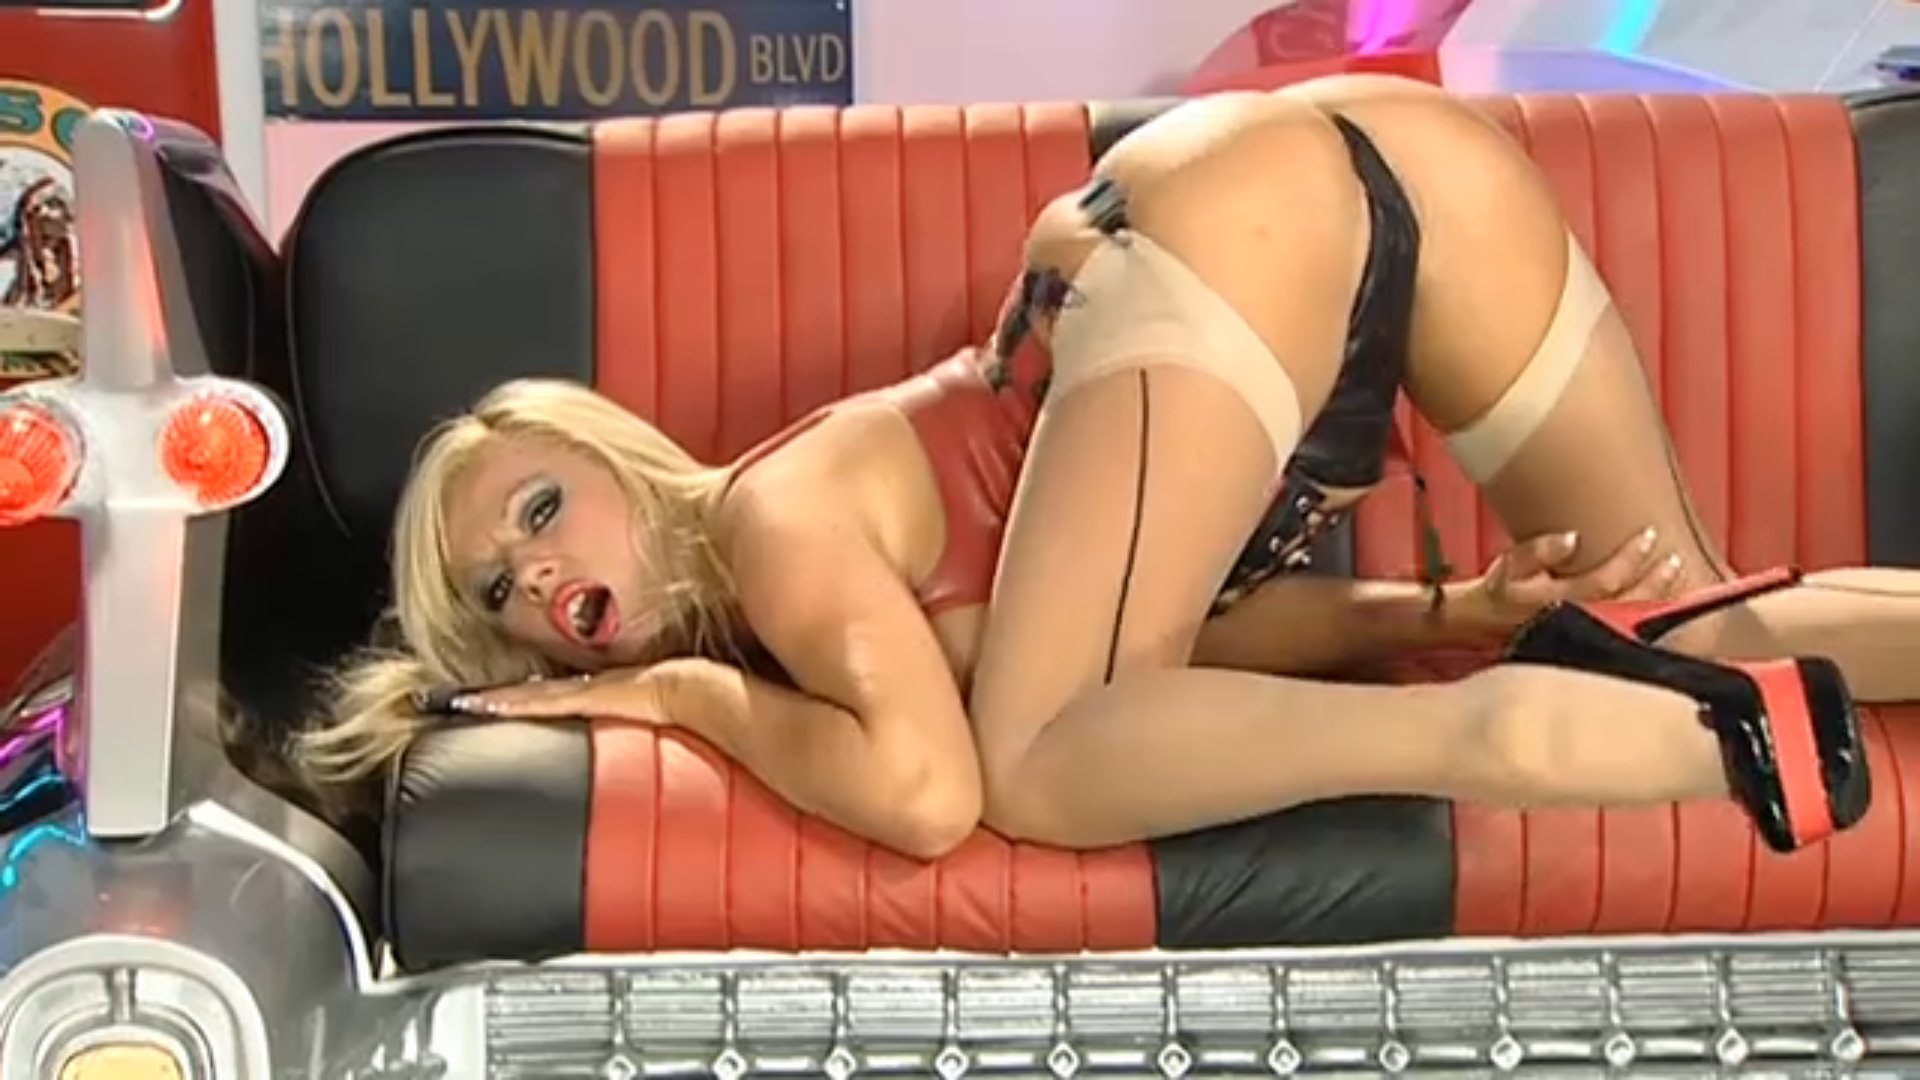 Amanda rendall and reede fox - 3 part 6